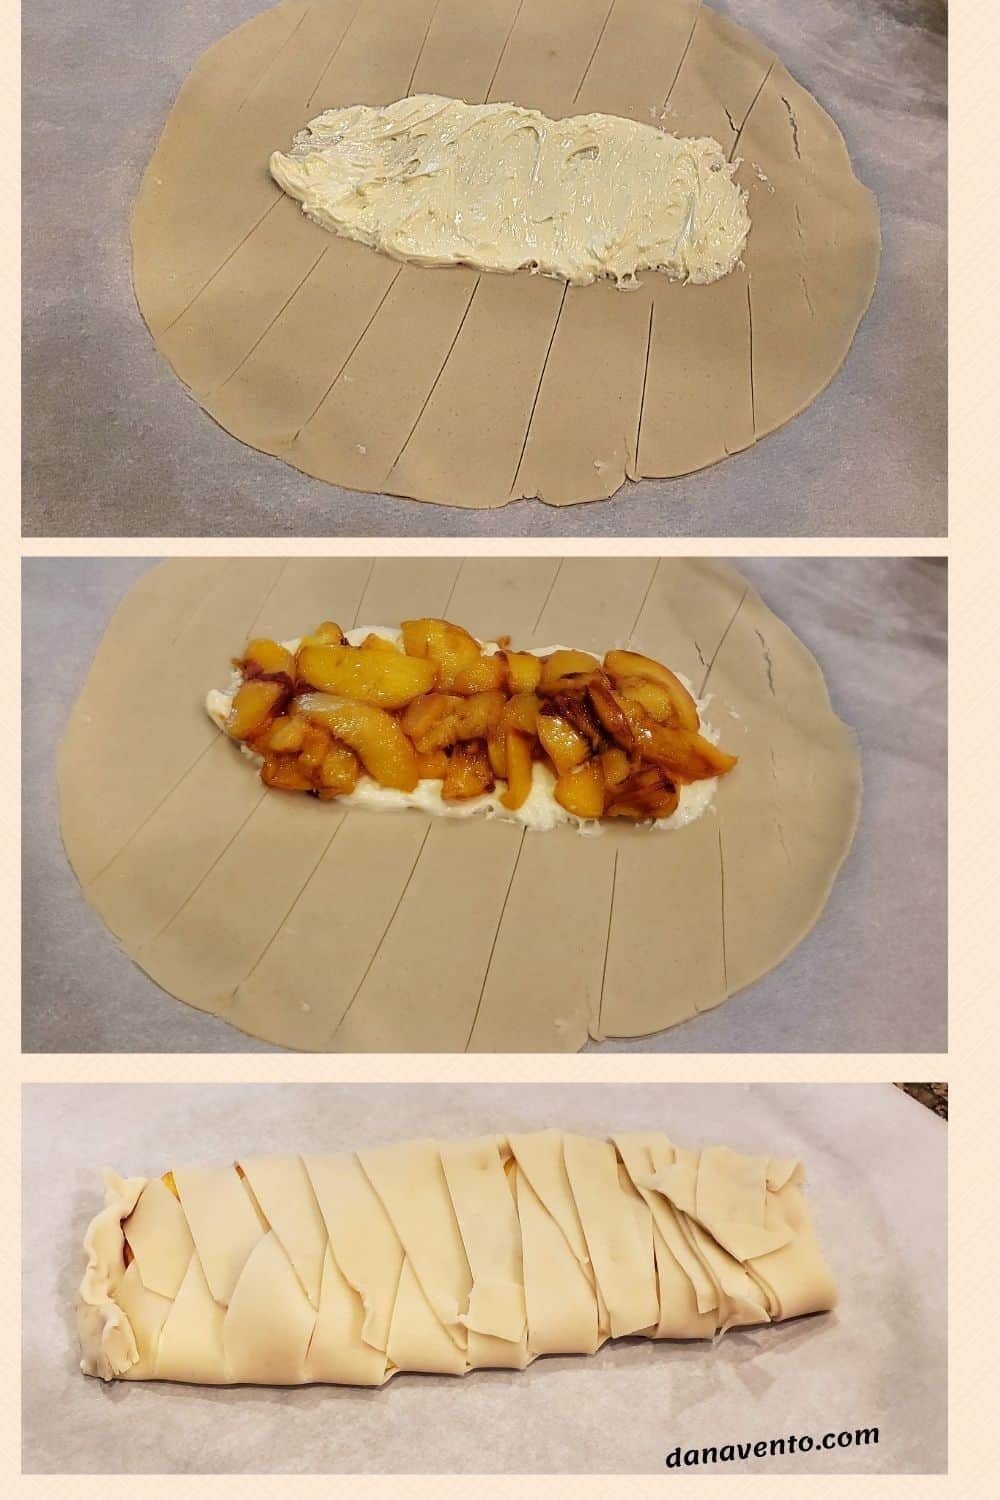 Almond Peach Danish In Process With Pastry Hack